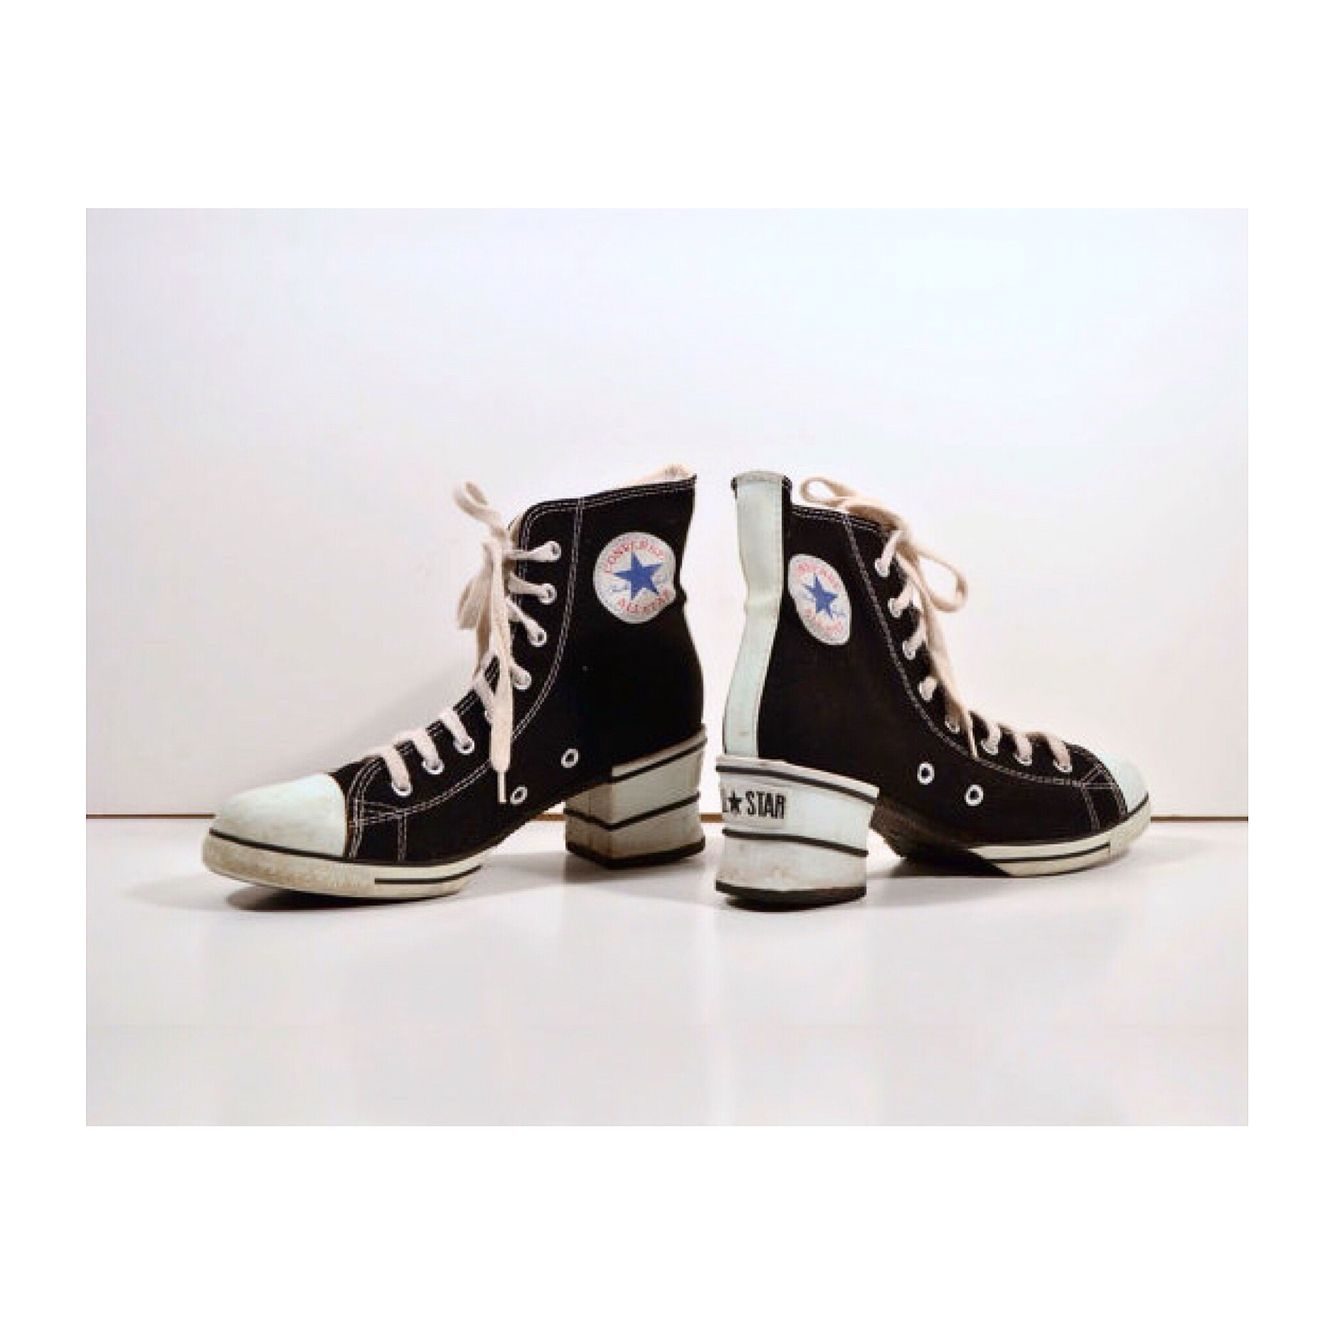 335e06ebc04 Vintage 90s CONVERSE Women s All Stars Chuck Taylor High Tops PLATFORM  Black…